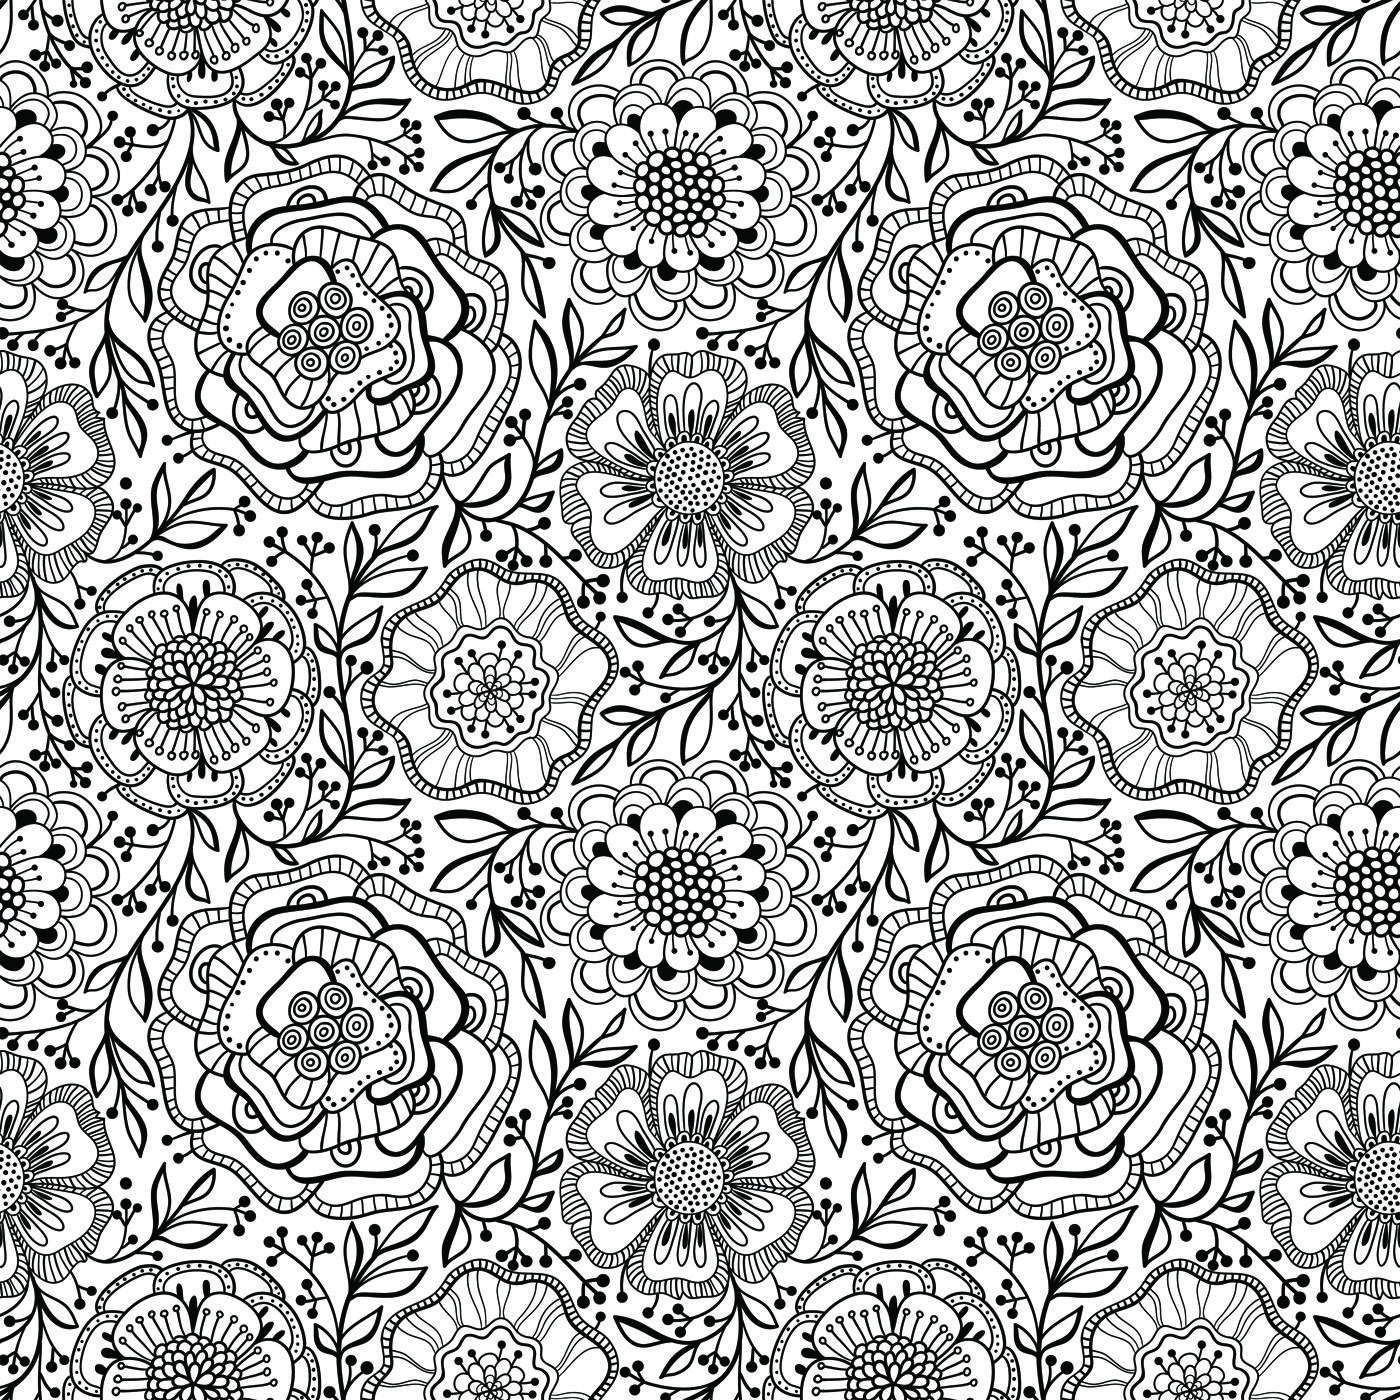 From Flower Coloring Book Vol. 1 | To Print | Pinterest | Basteln ...